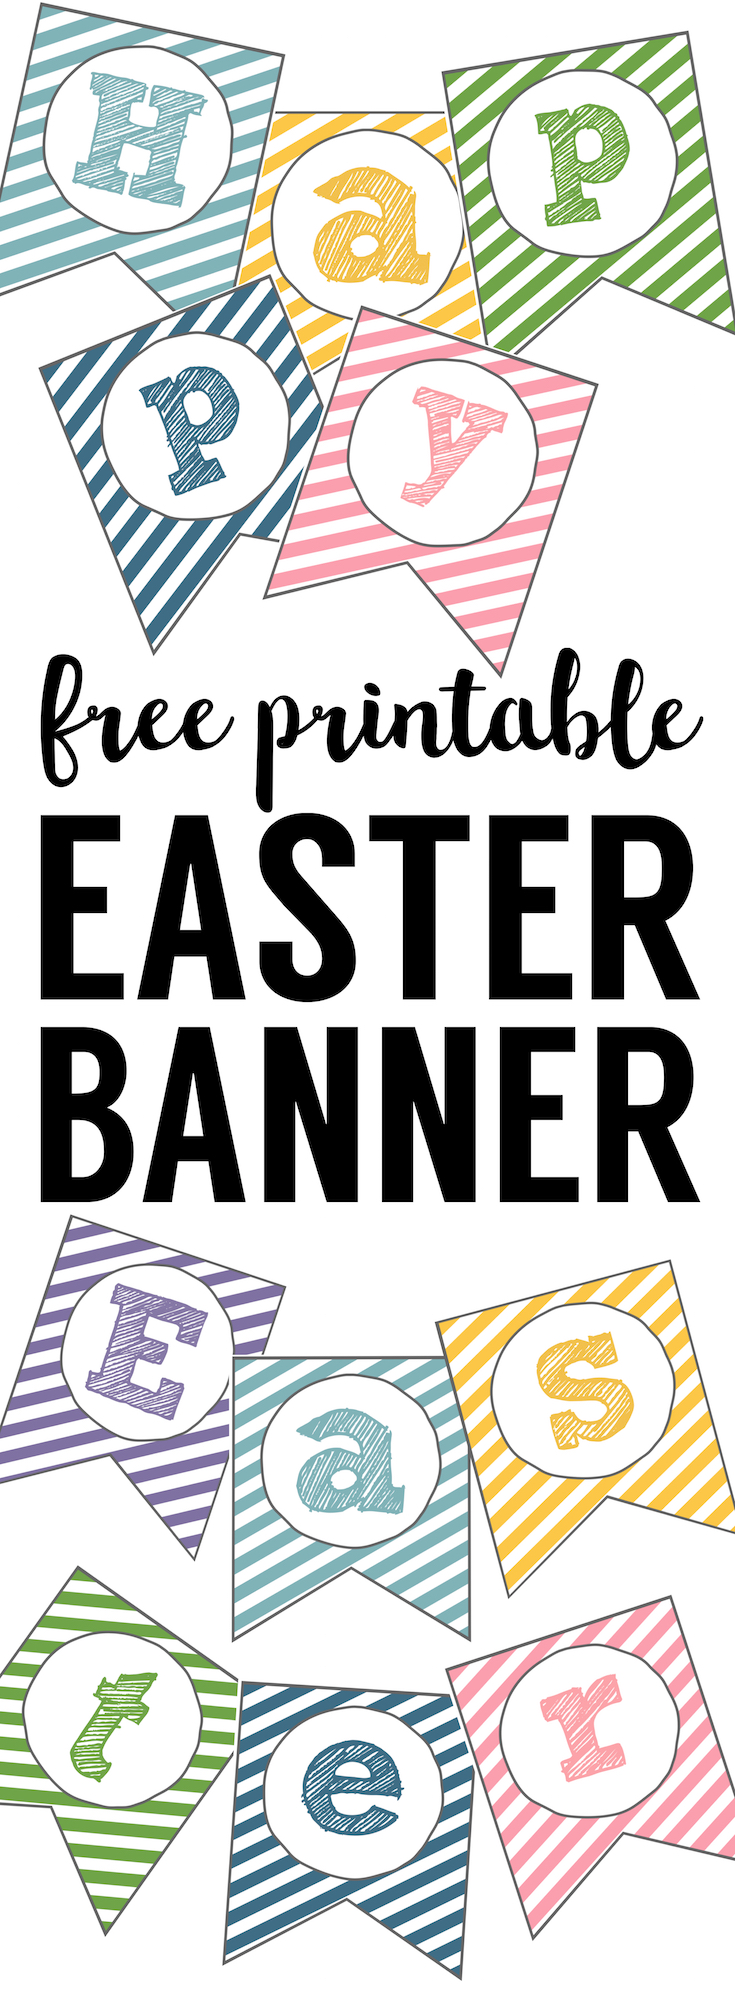 Easter Banner Free Printable. This Happy Easter Sign Printable is an easy DIY for church Easter egg hunt decor or Easter dinner decorations.